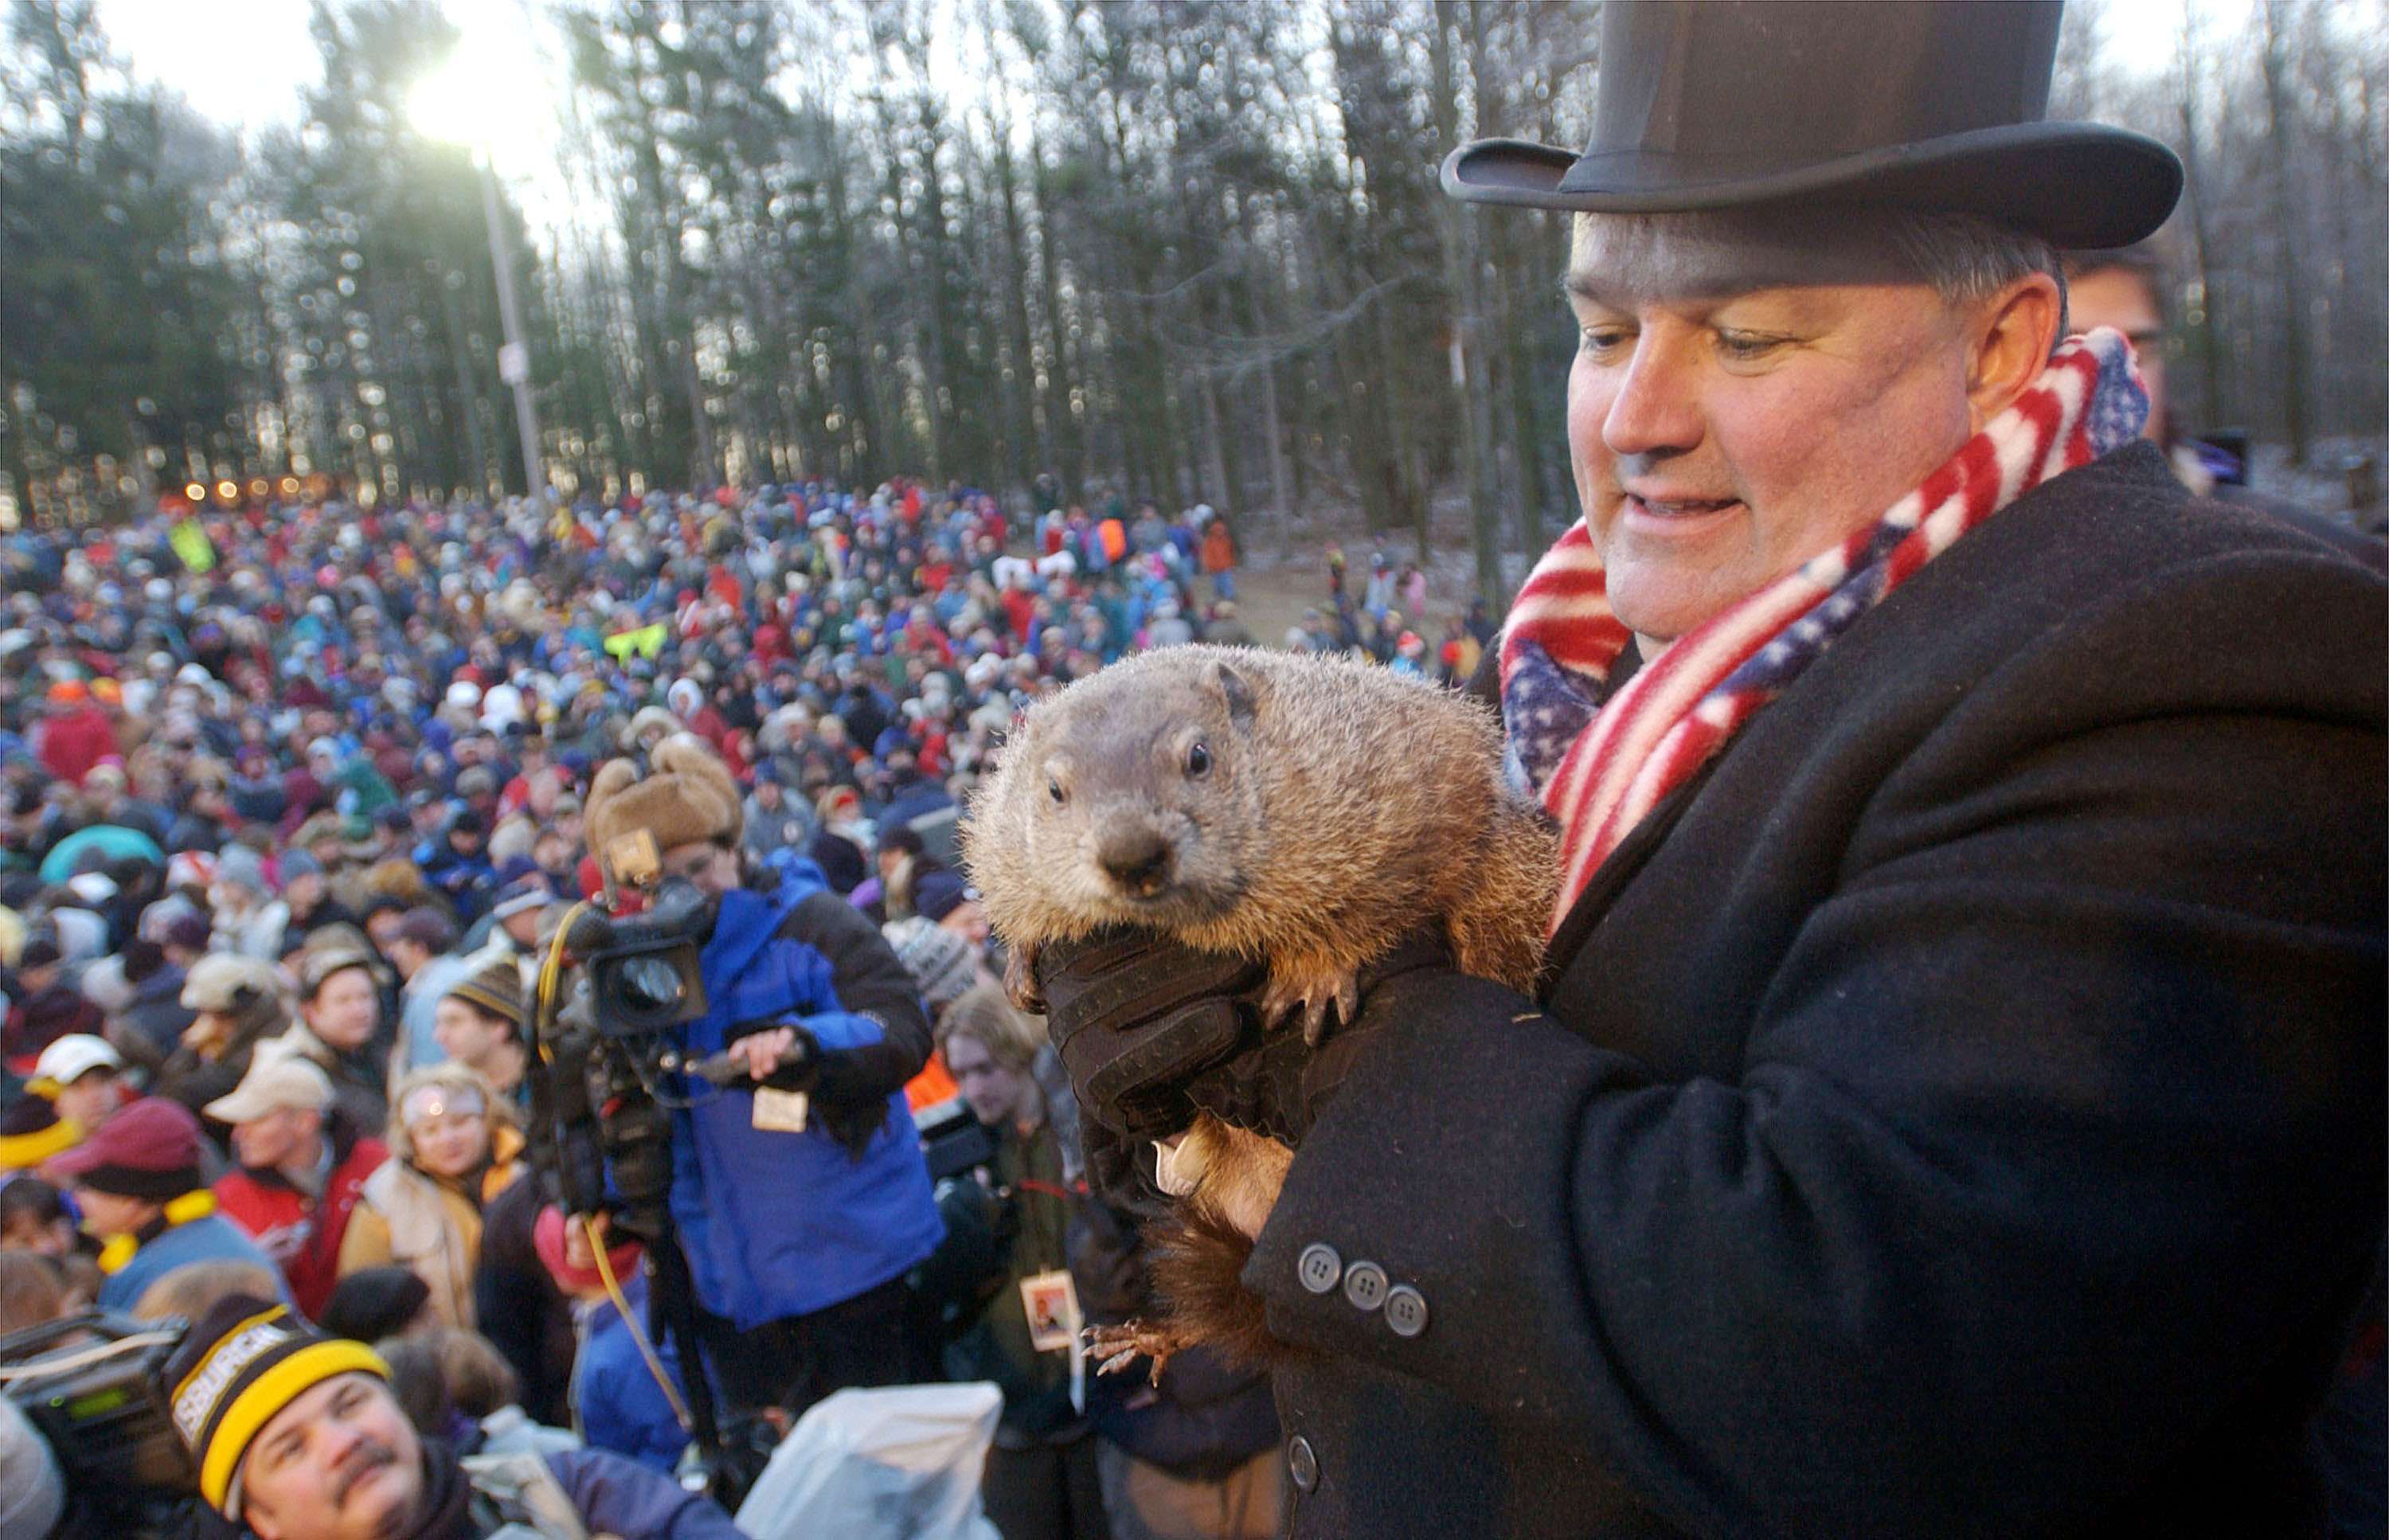 Six More Weeks of Winter as Punxsutawney Phil Again Sees His Shadow